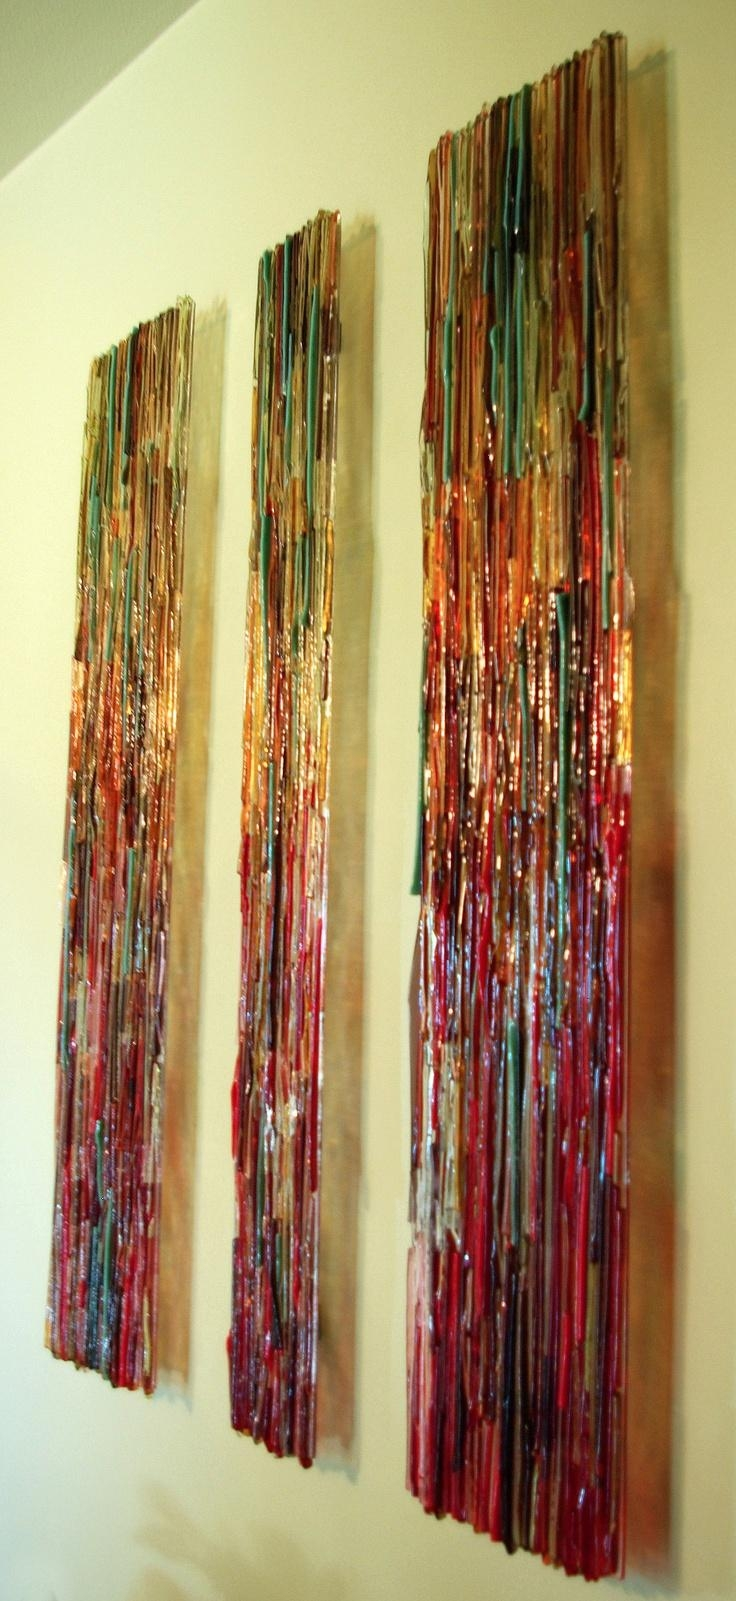 25+ Best Glass Wall Art Ideas On Pinterest | Glass Art, Fused inside Fused Glass Wall Art Panels